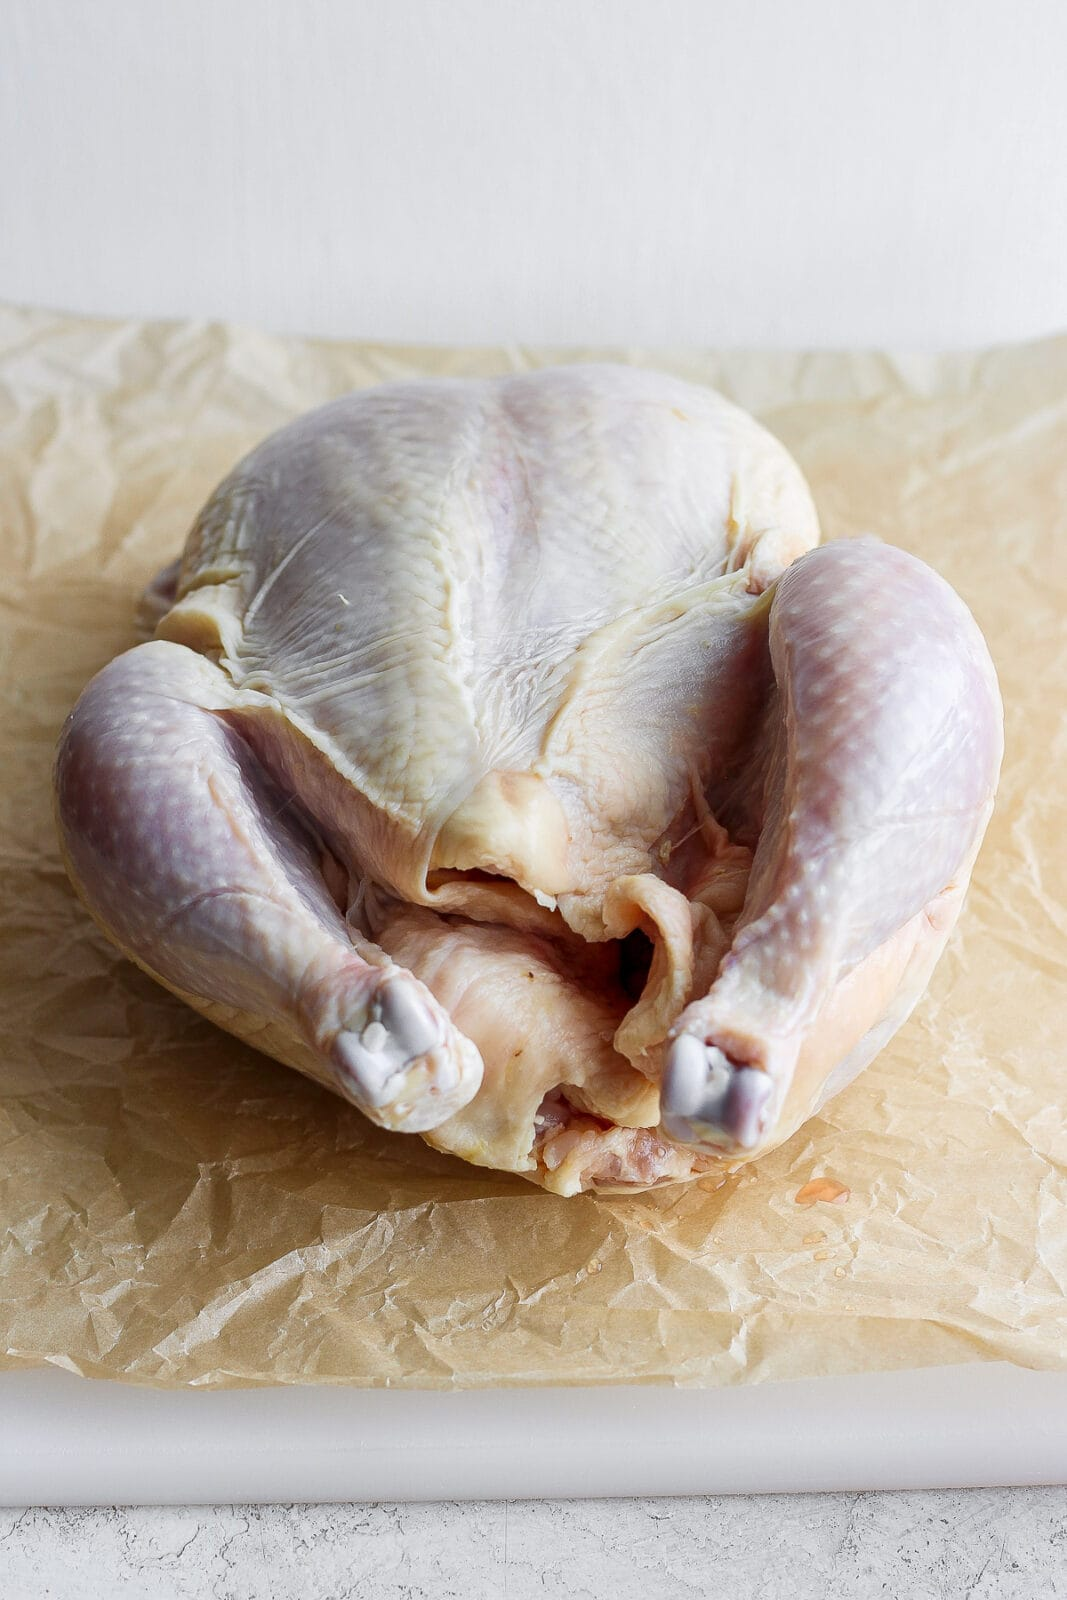 A whole, raw chicken.